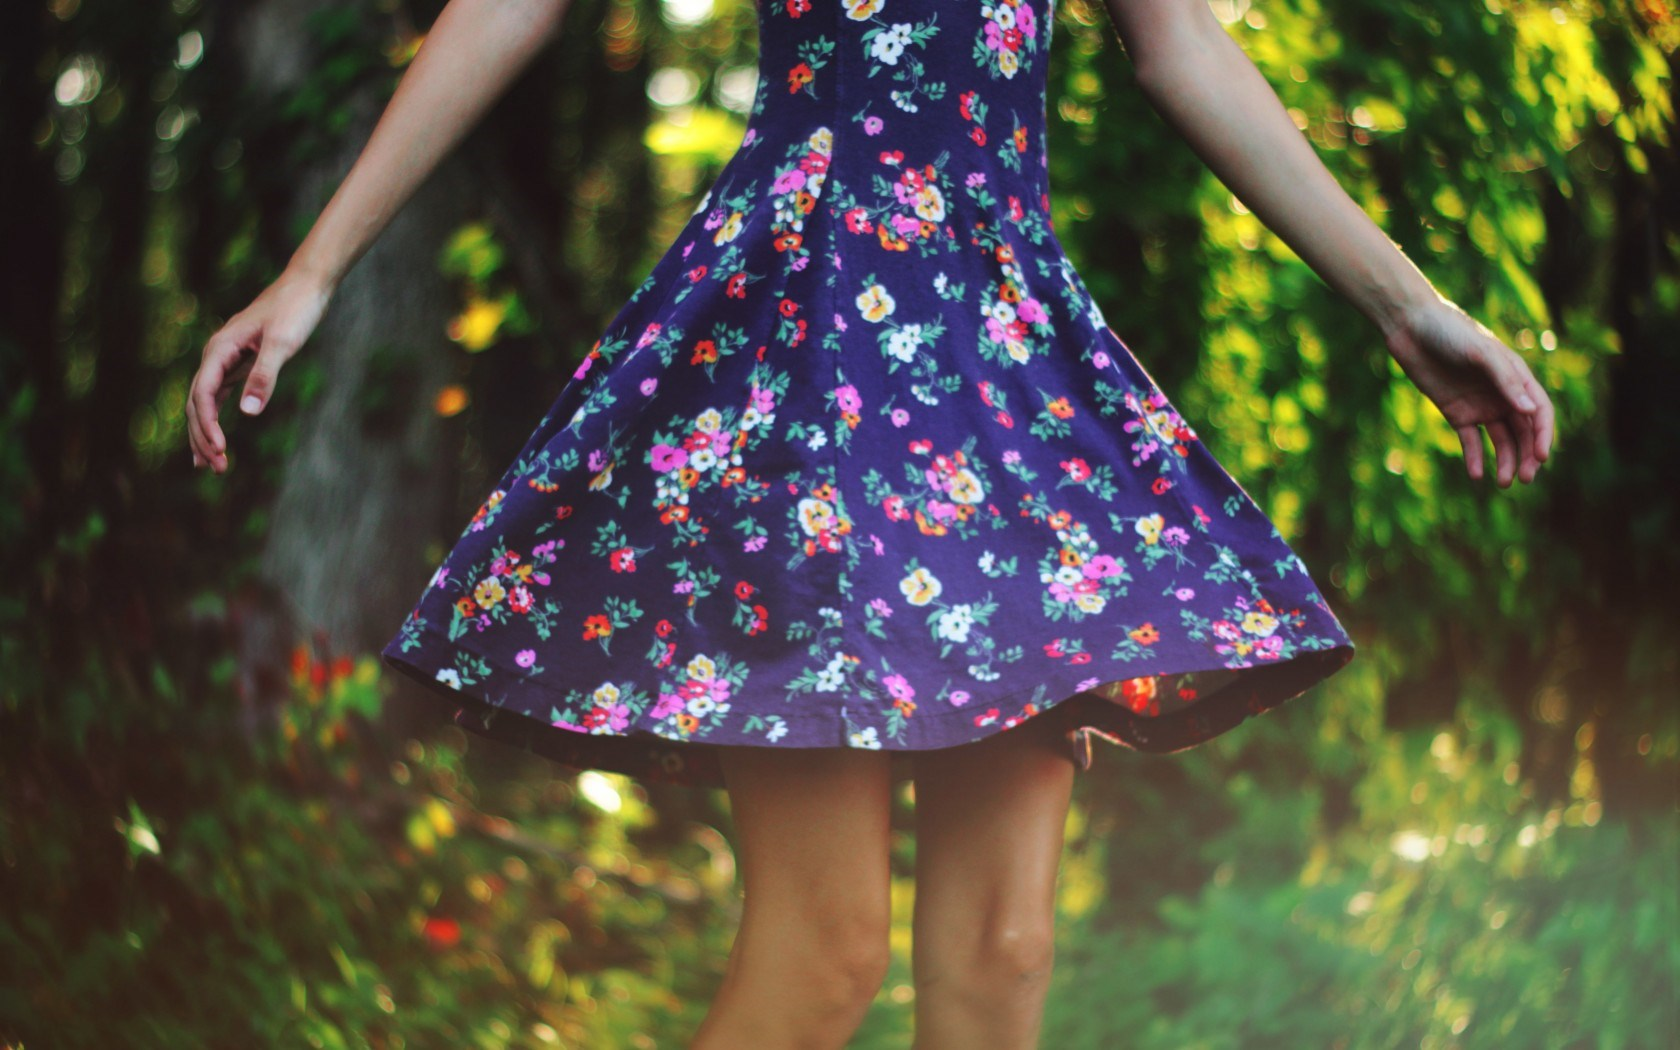 Floral Dress Wallpaper